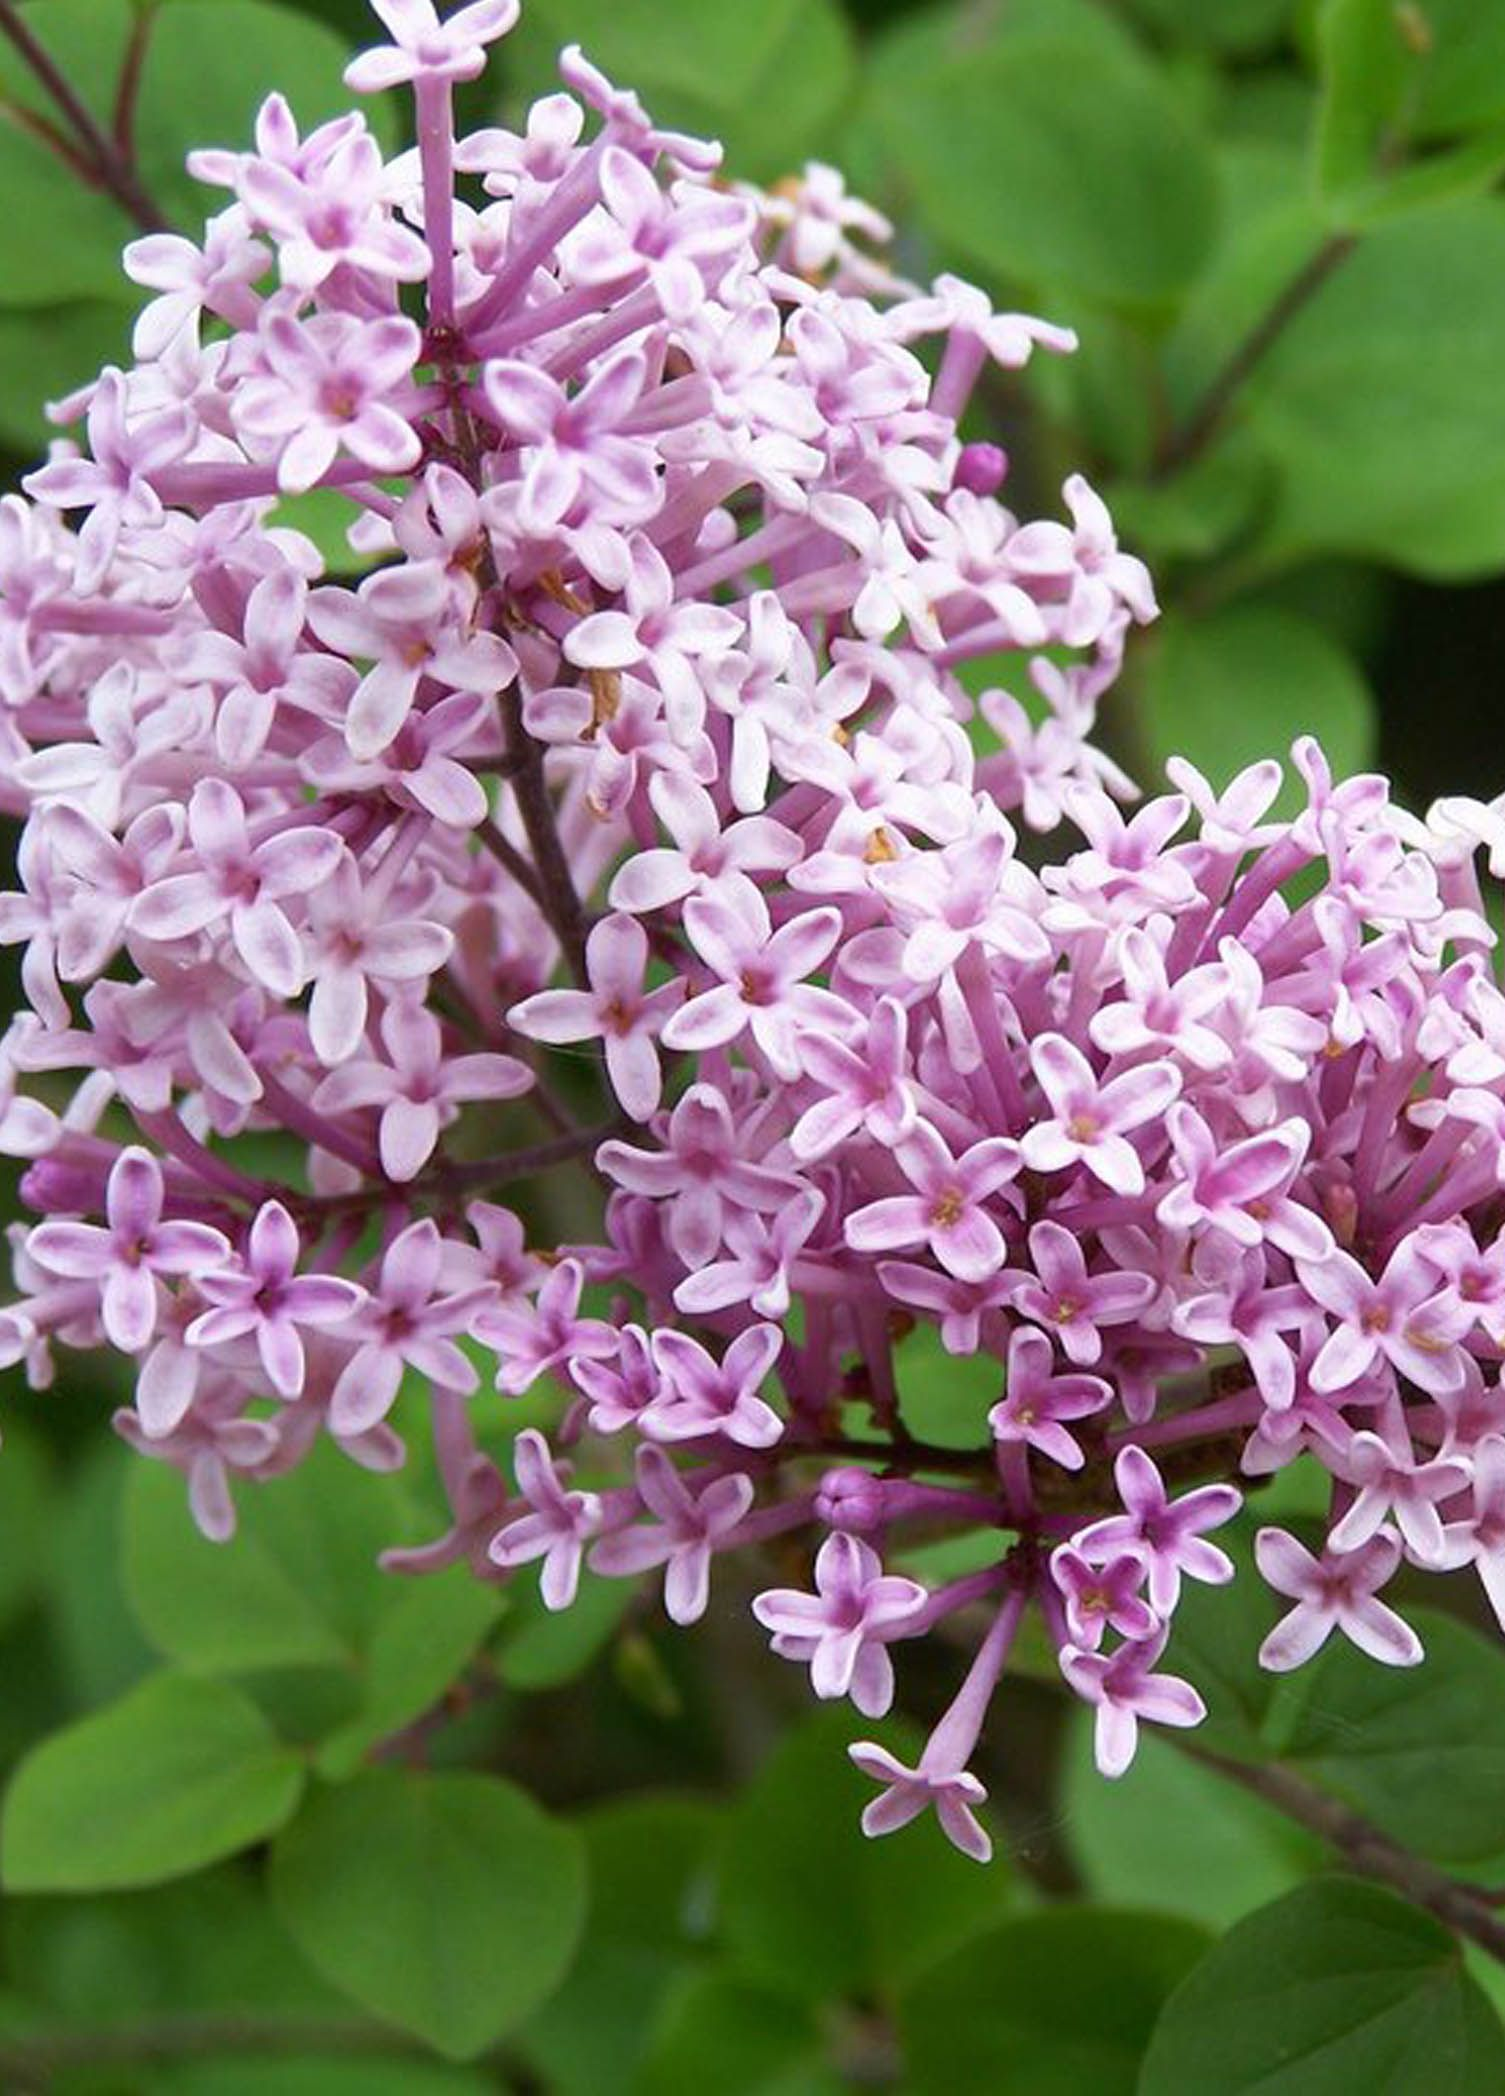 Meyer Lilac Palibin Fragrant Red Purple Buds Open To Pink Blooms In May The Hardiest Easiest To Grown Great Mildew Res Lilac Flowers Lilac Plant Syringa